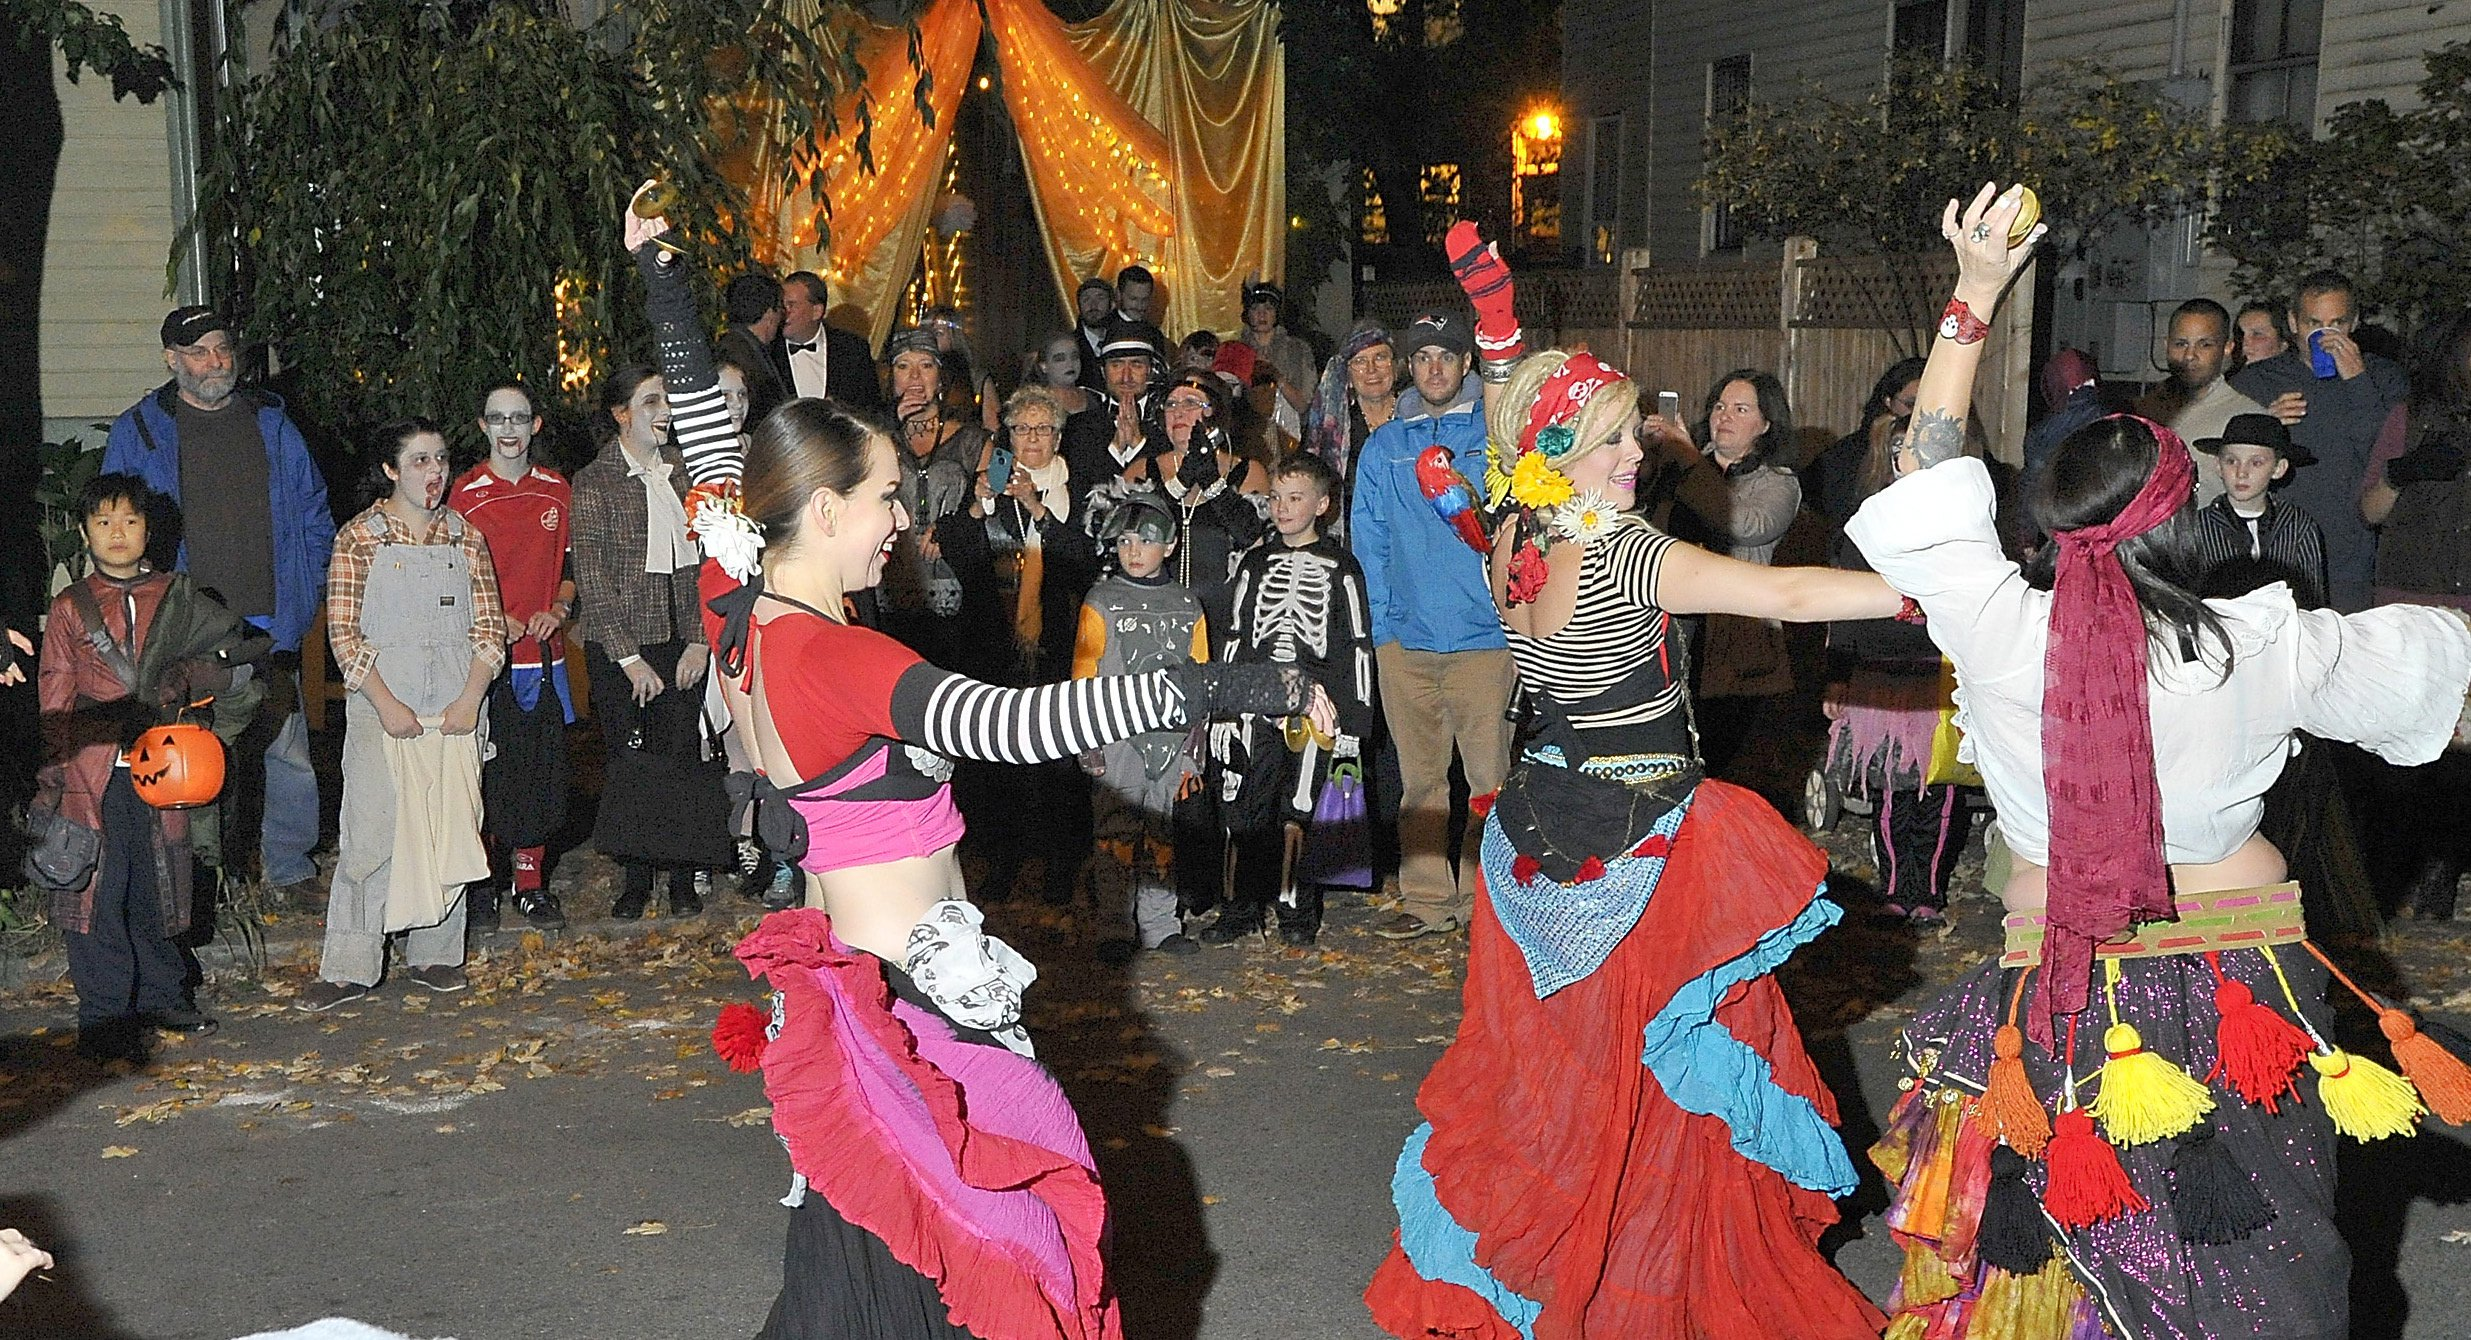 West End Halloween Parade